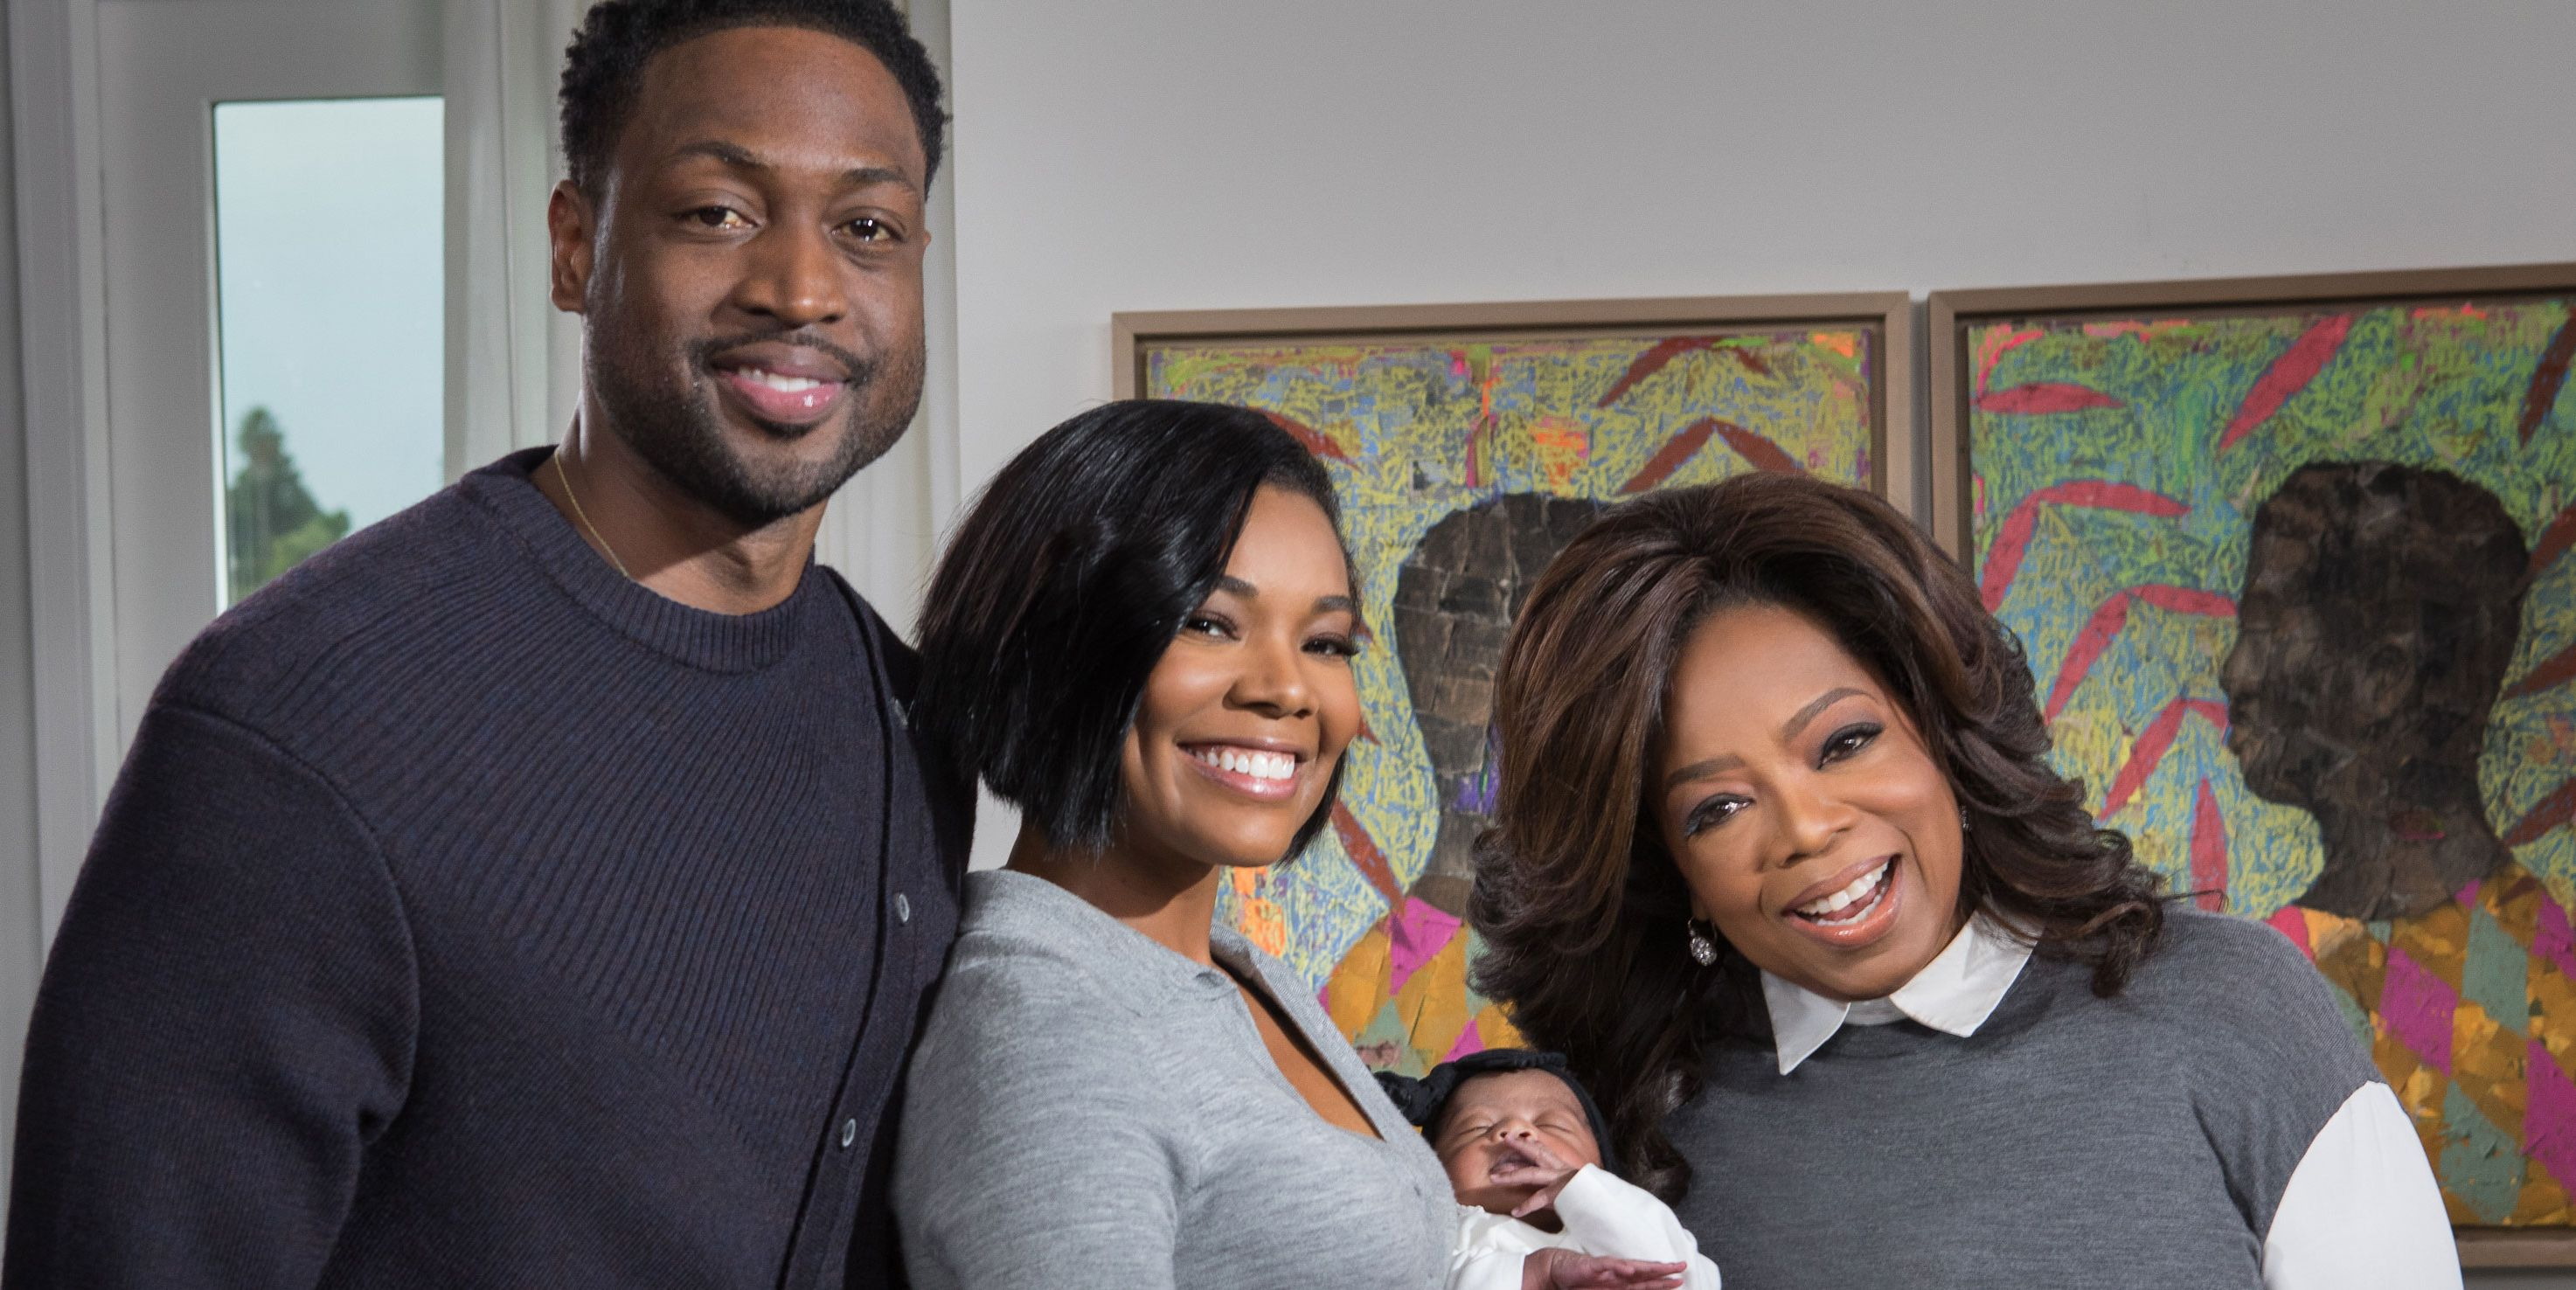 12 Extraordinary Revelations From Oprah's Interview With Gabrielle Union and Dwyane Wade